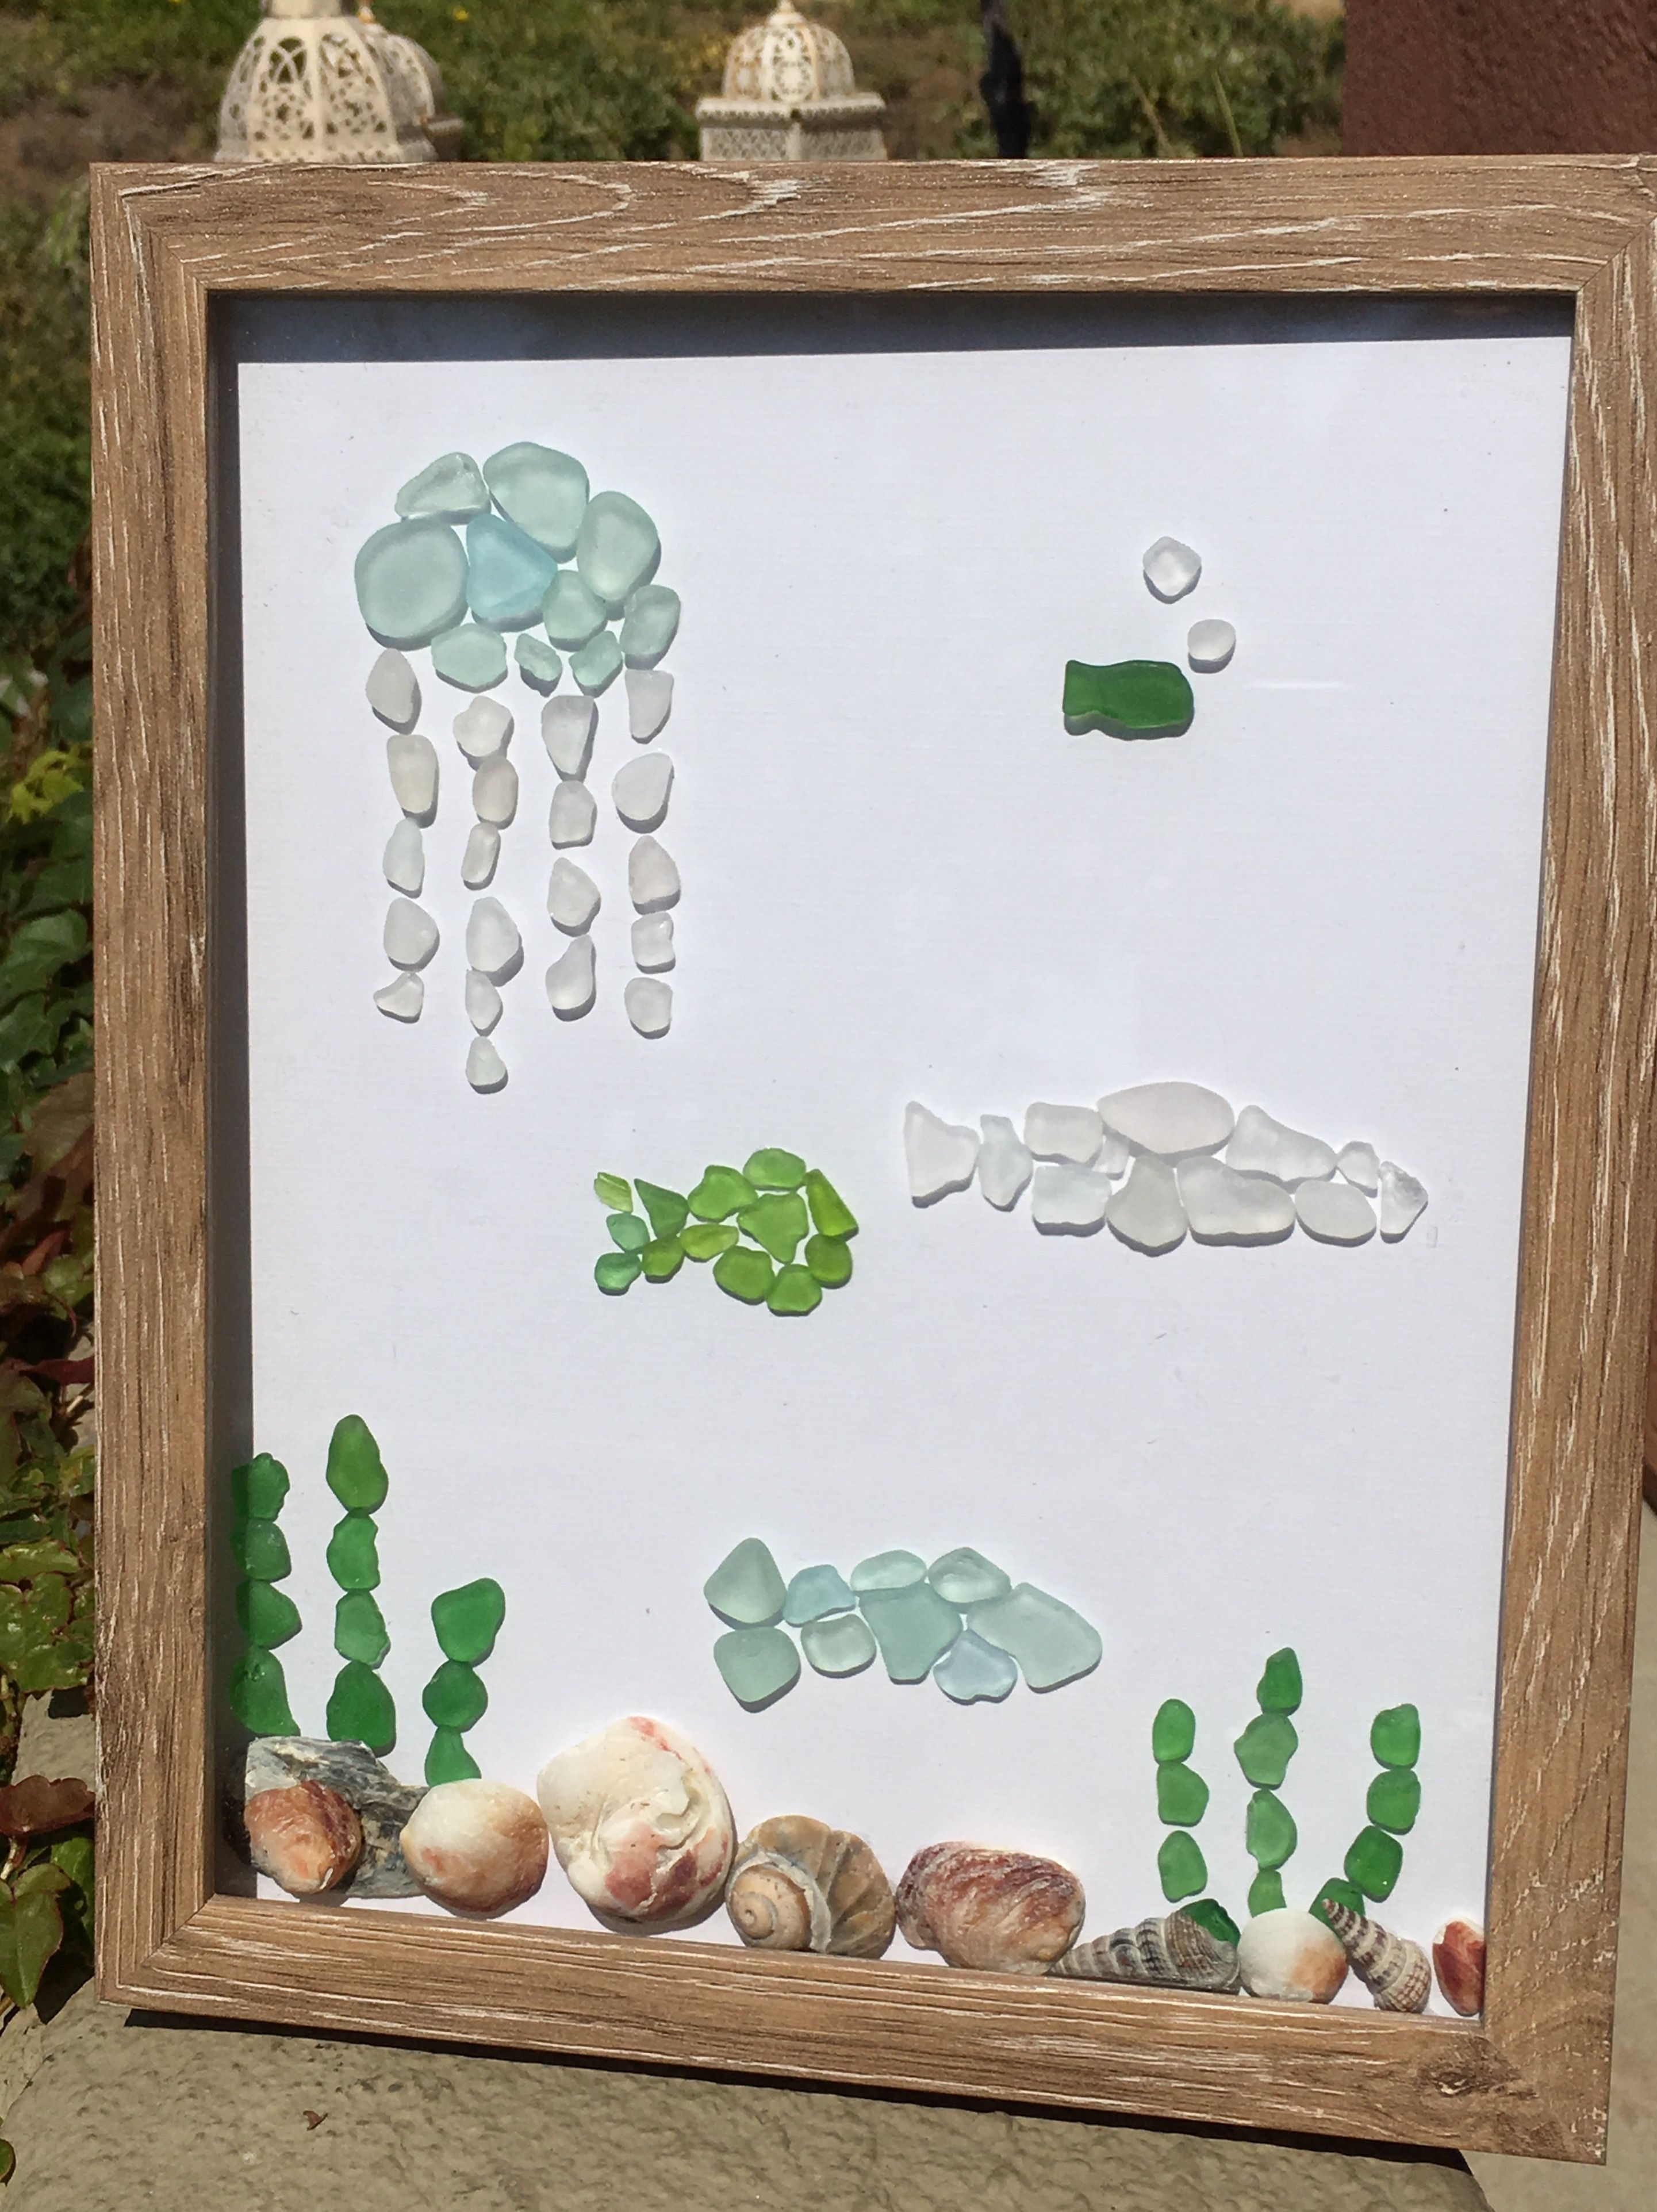 pin by karina on decor ideas | pinterest | sea glass, sea glass art